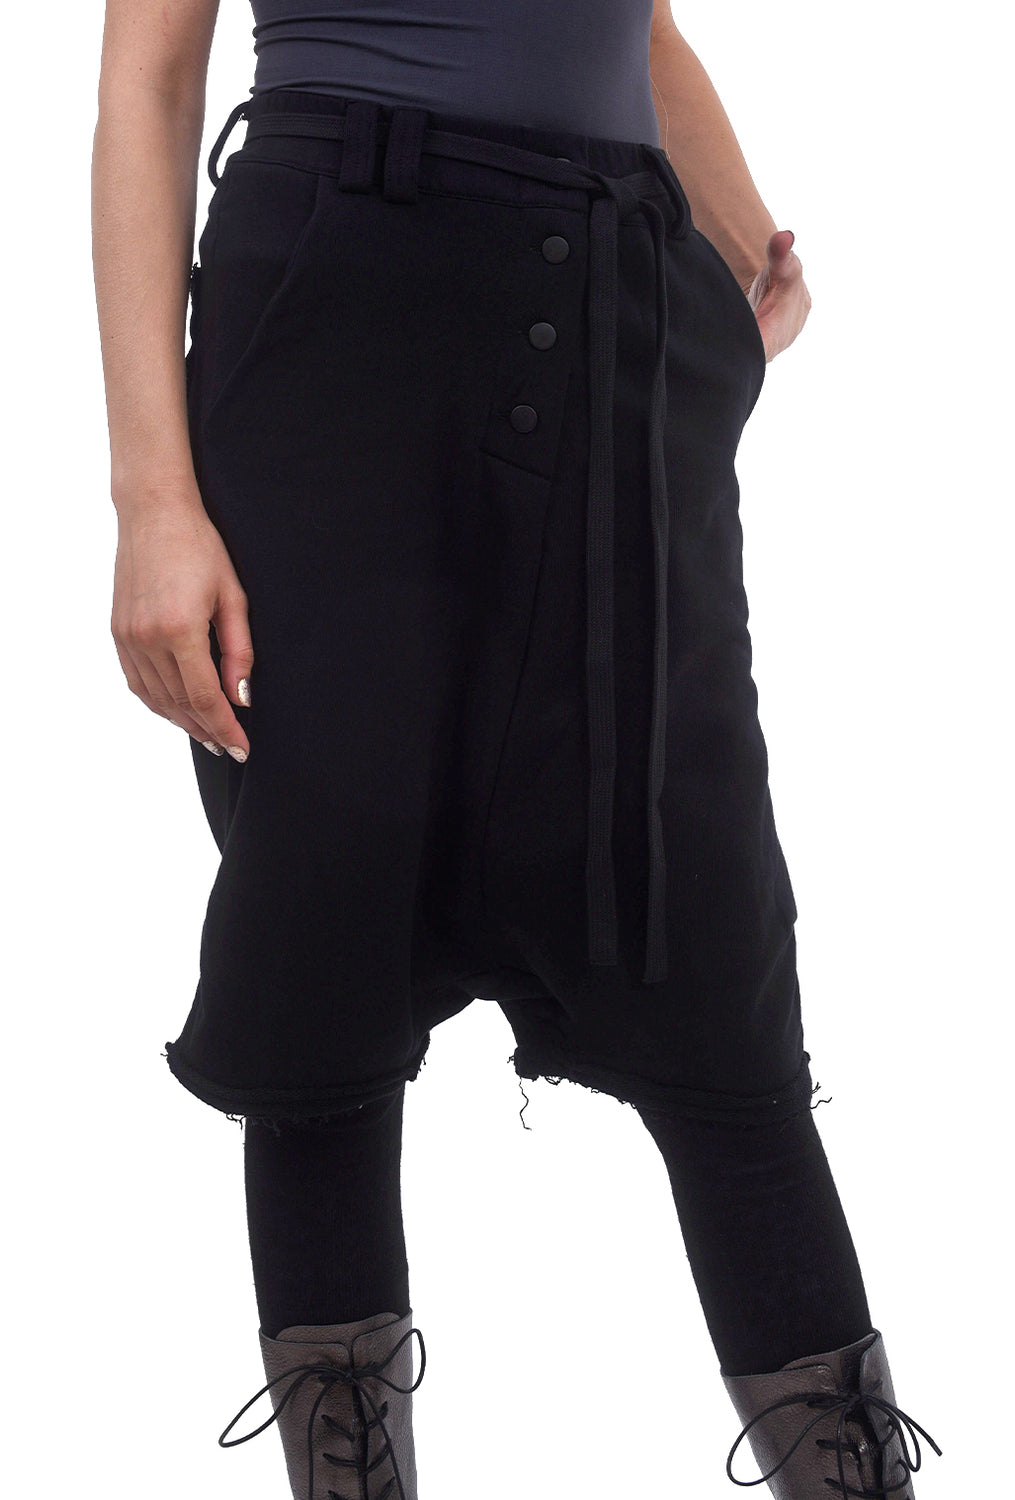 Studio B3 Noxo Cropped Jersey Pants, Black